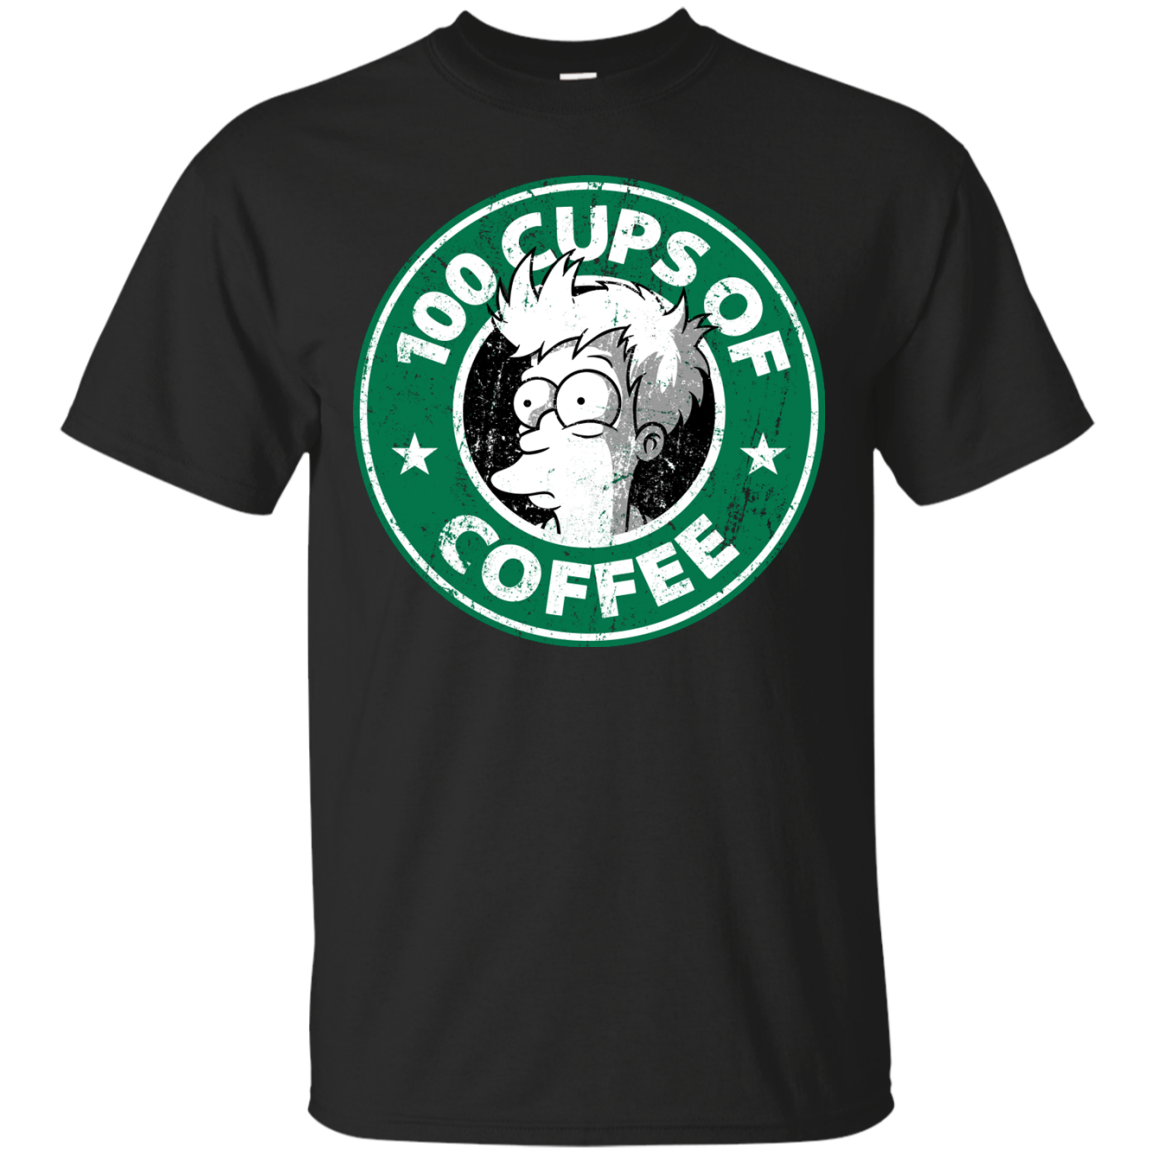 100 Cups Of Coffee T-Shirt Men